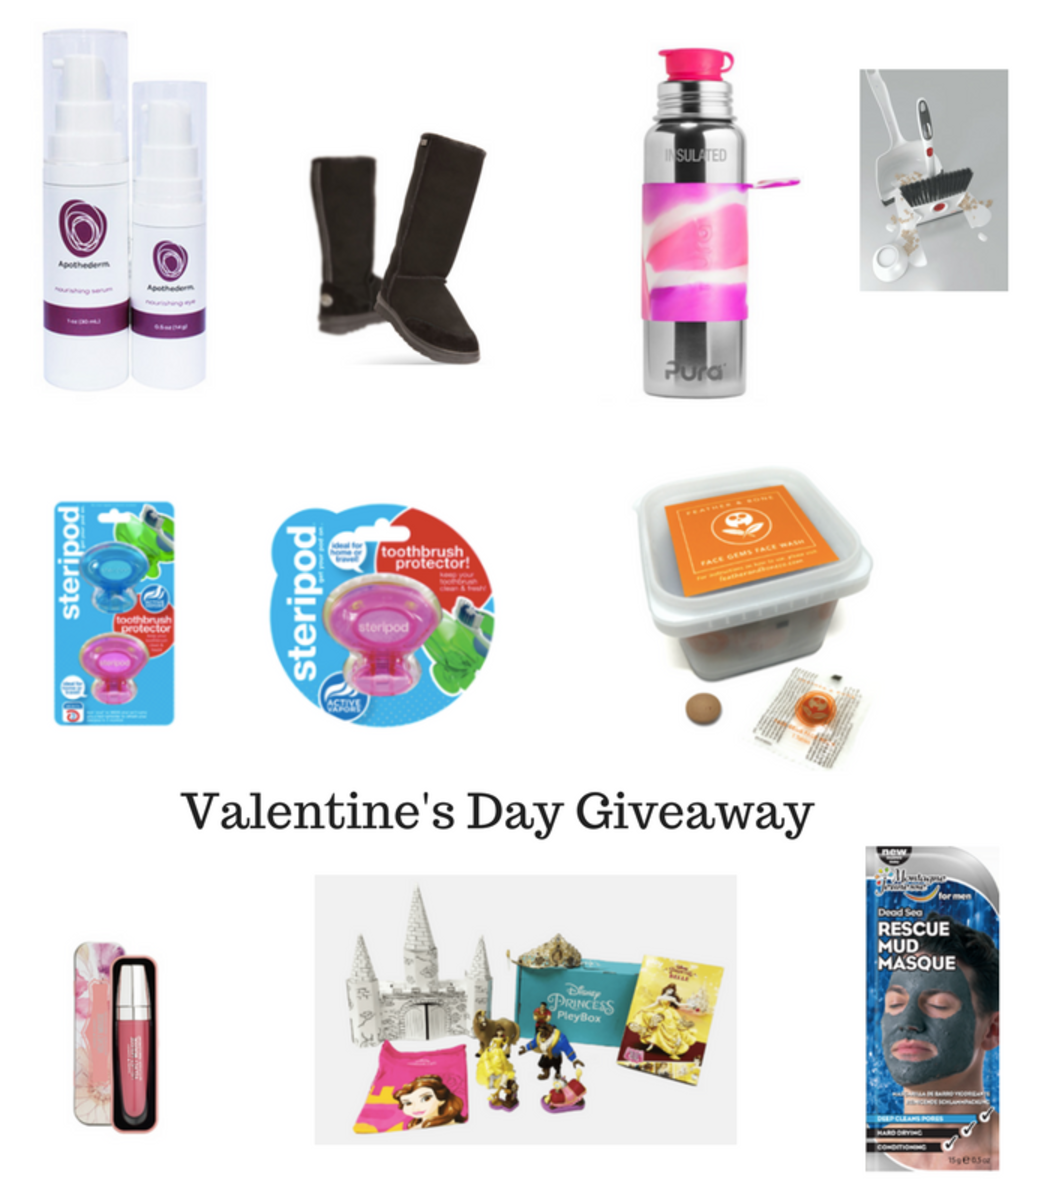 giveaway, valentine's day, gifts for her, valentines day gifts